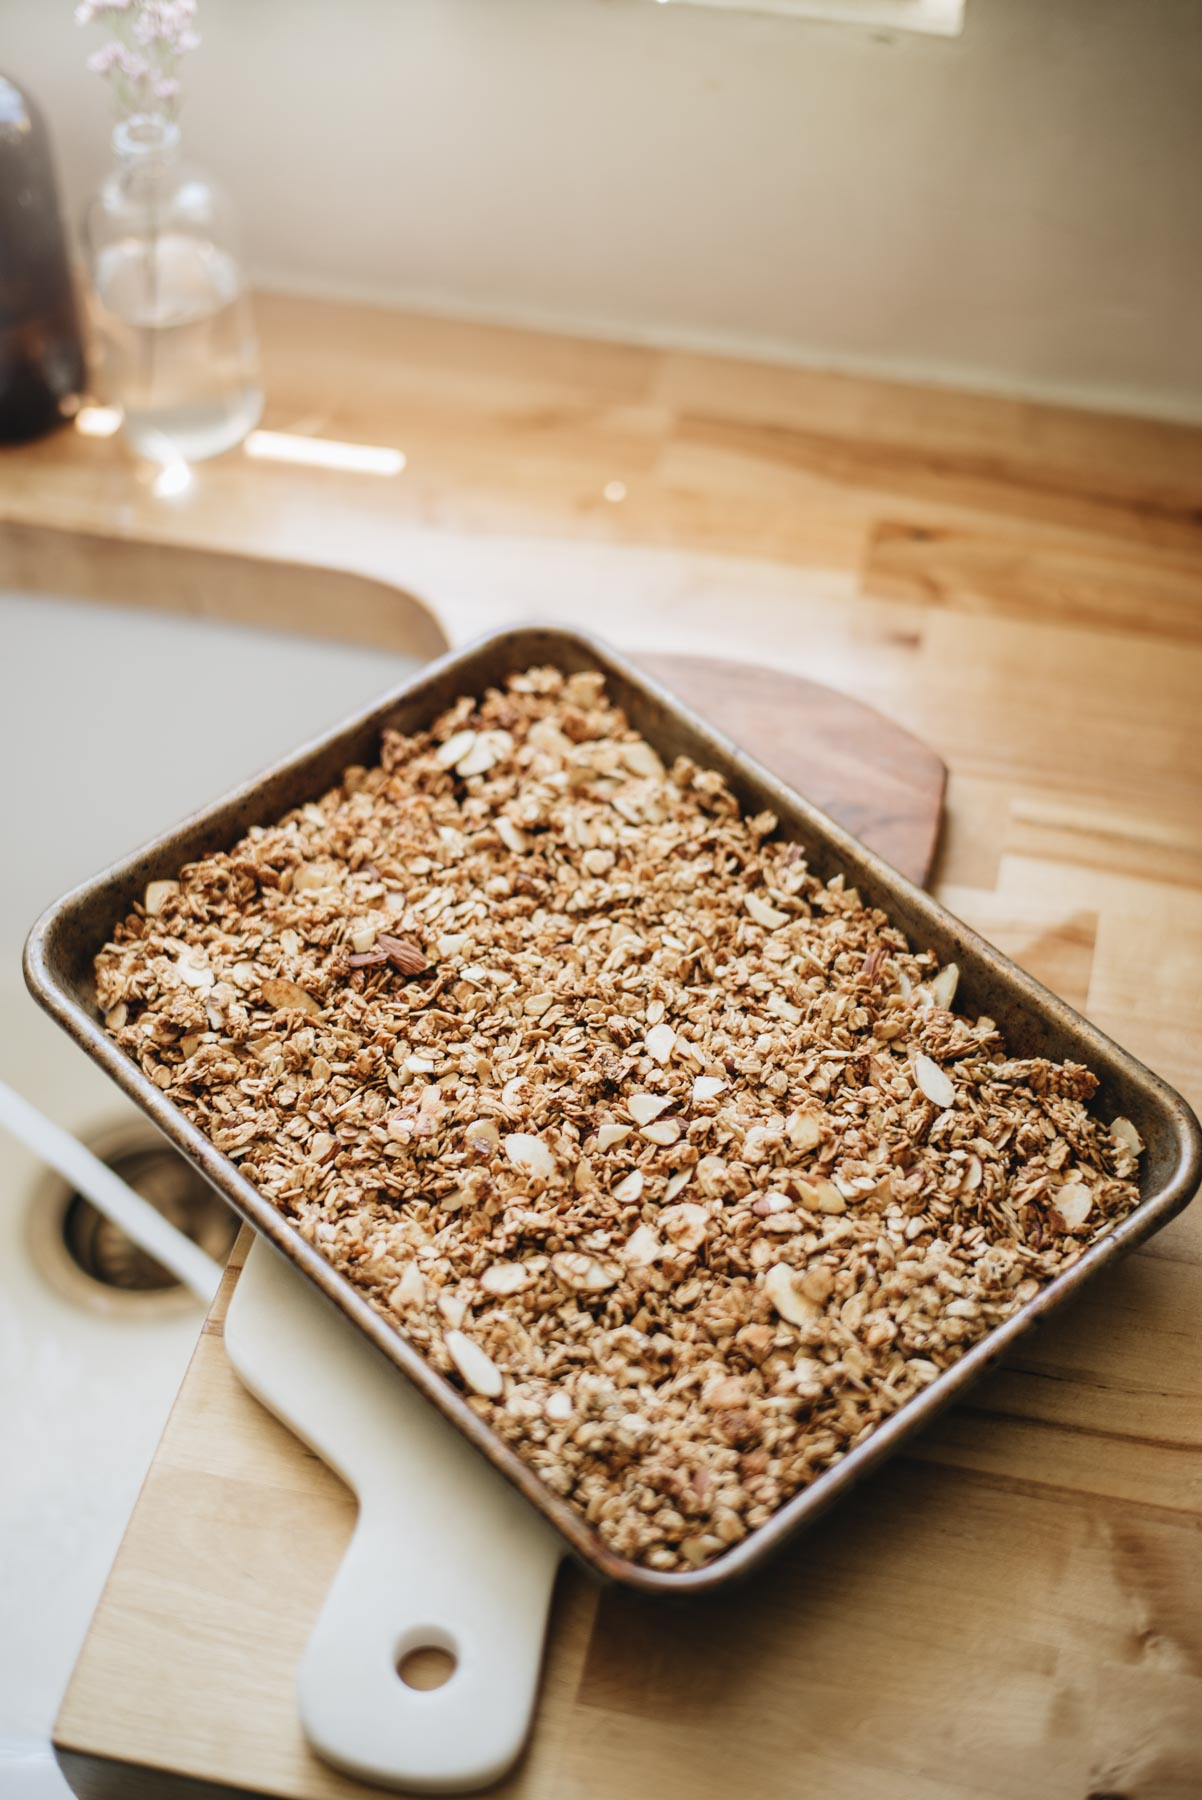 Jess Ann Kirby bakes homemade granola with chia seeds, almonds and oats